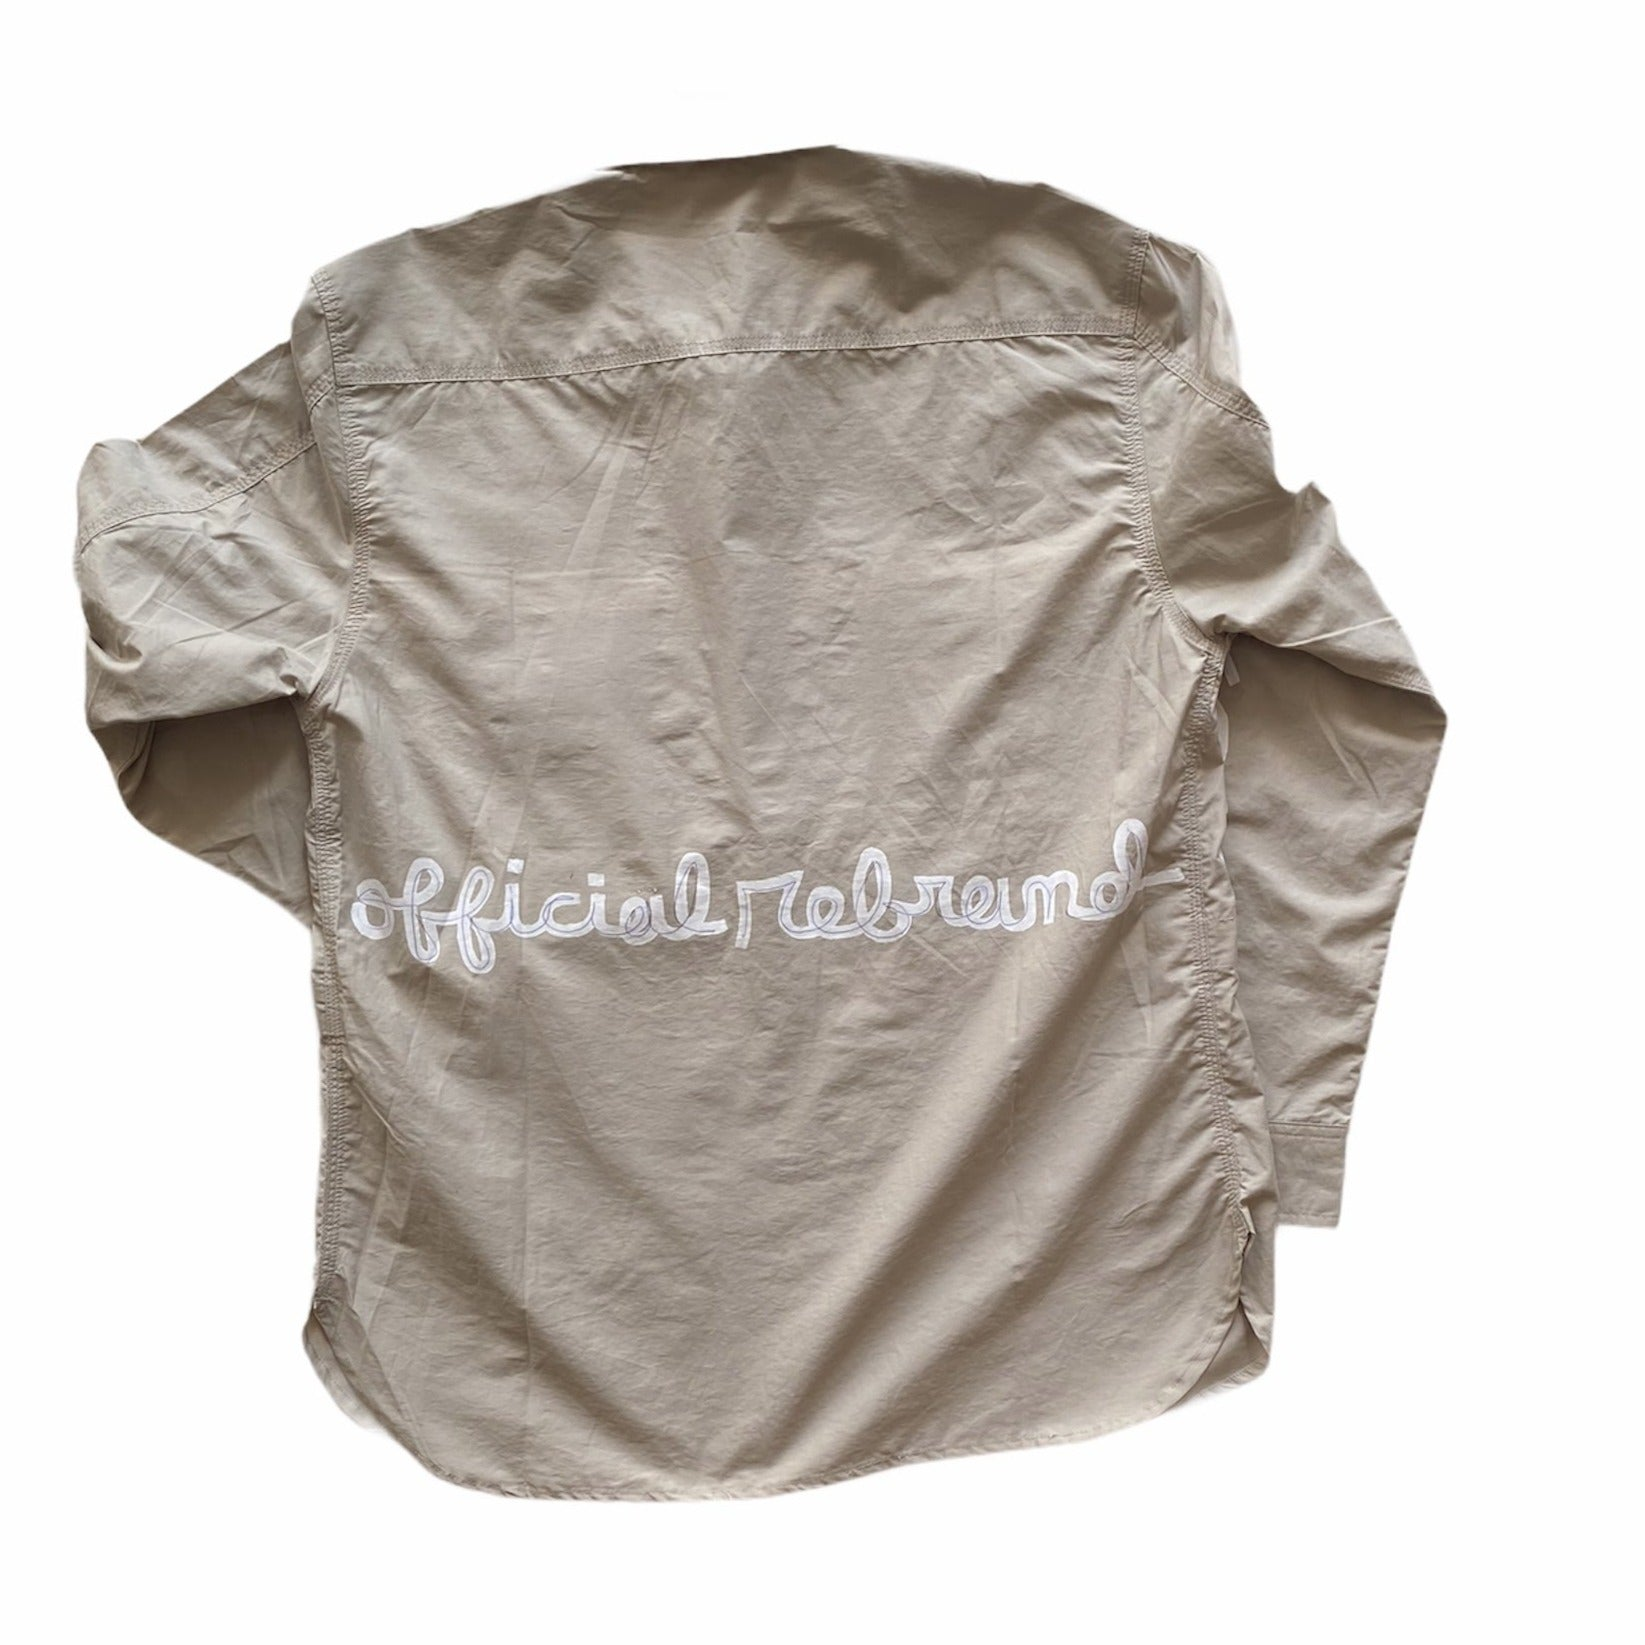 EXTRACTION OBSTRUCTION fisherman shirt